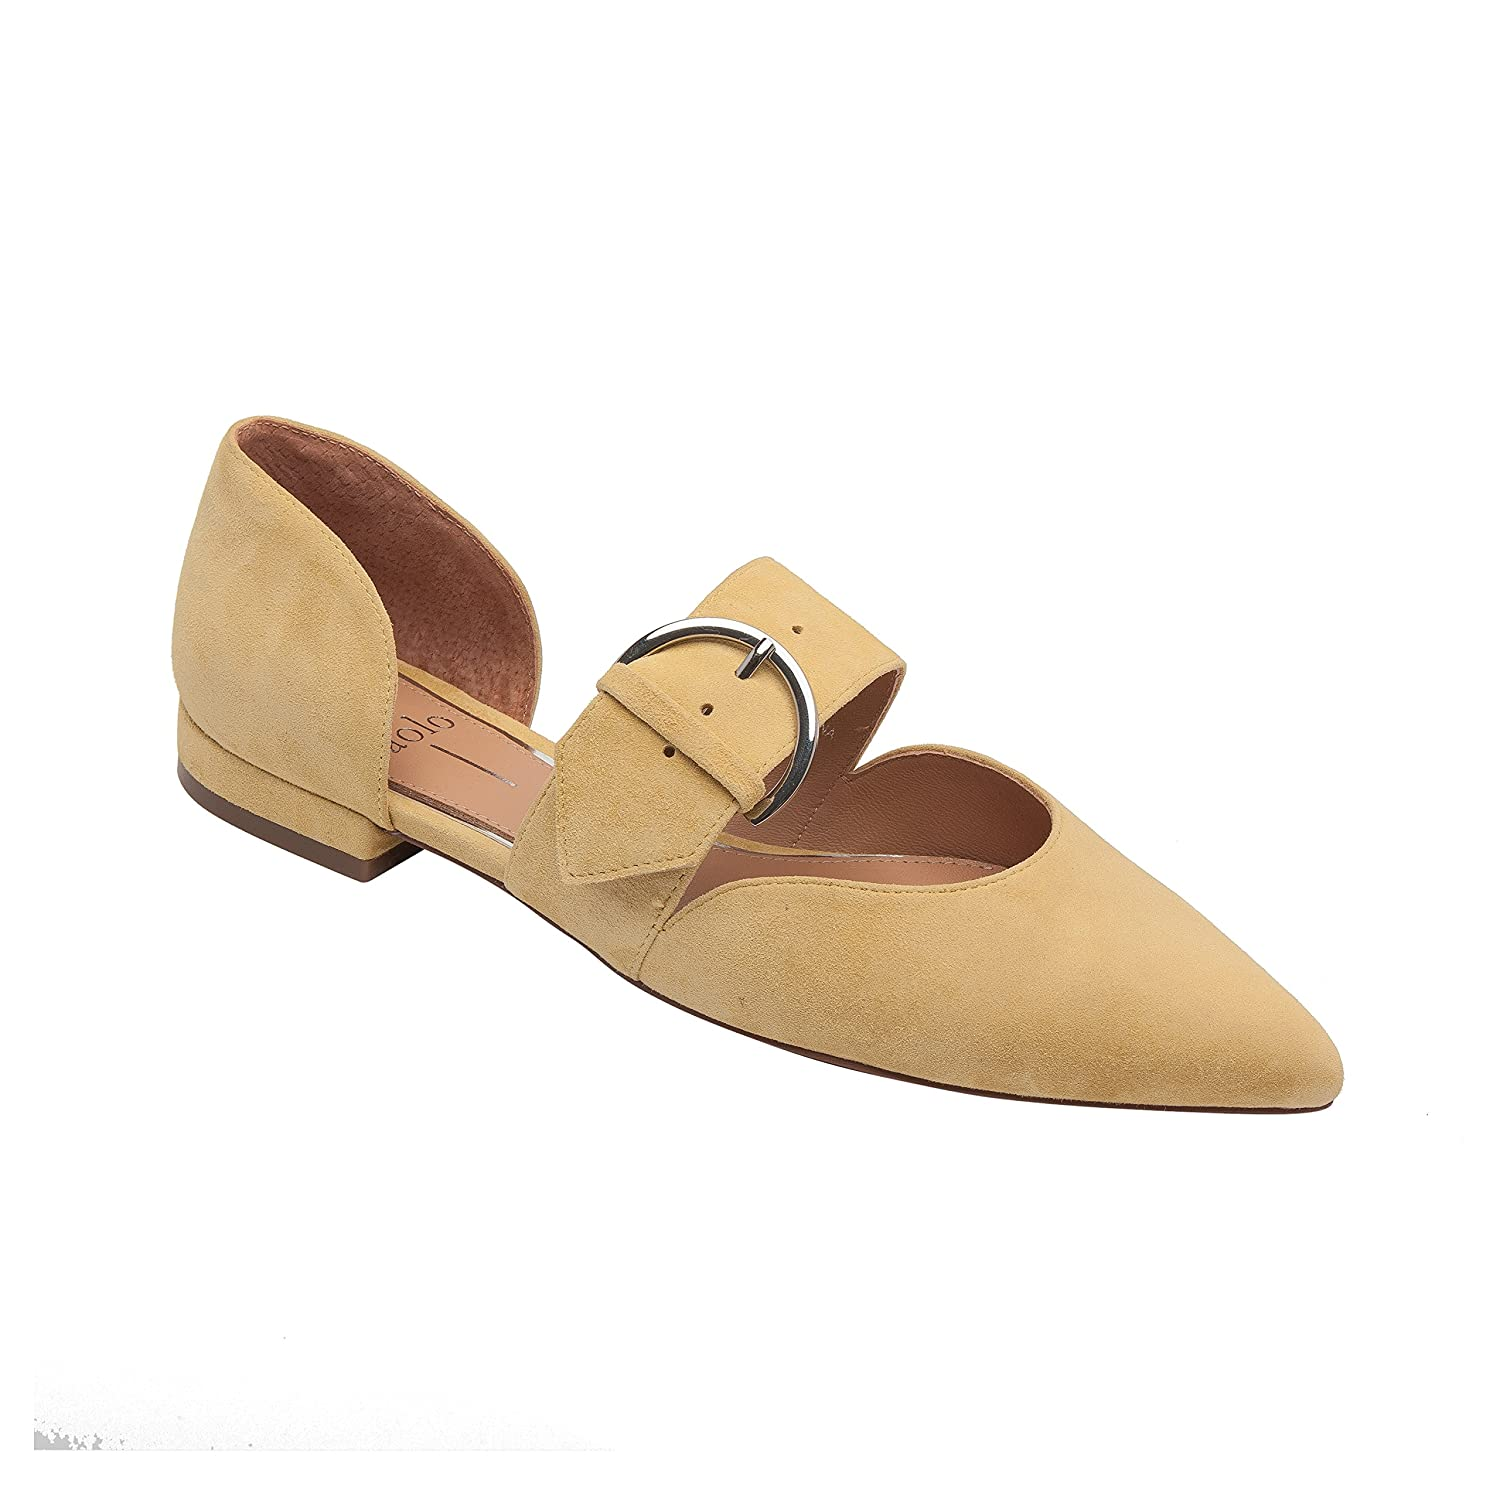 Dean | Women's Two Piece Pointy Toe Comfortable Leather or Suede Ballet Flat B07957DL18 7.5 M US|Straw Suede